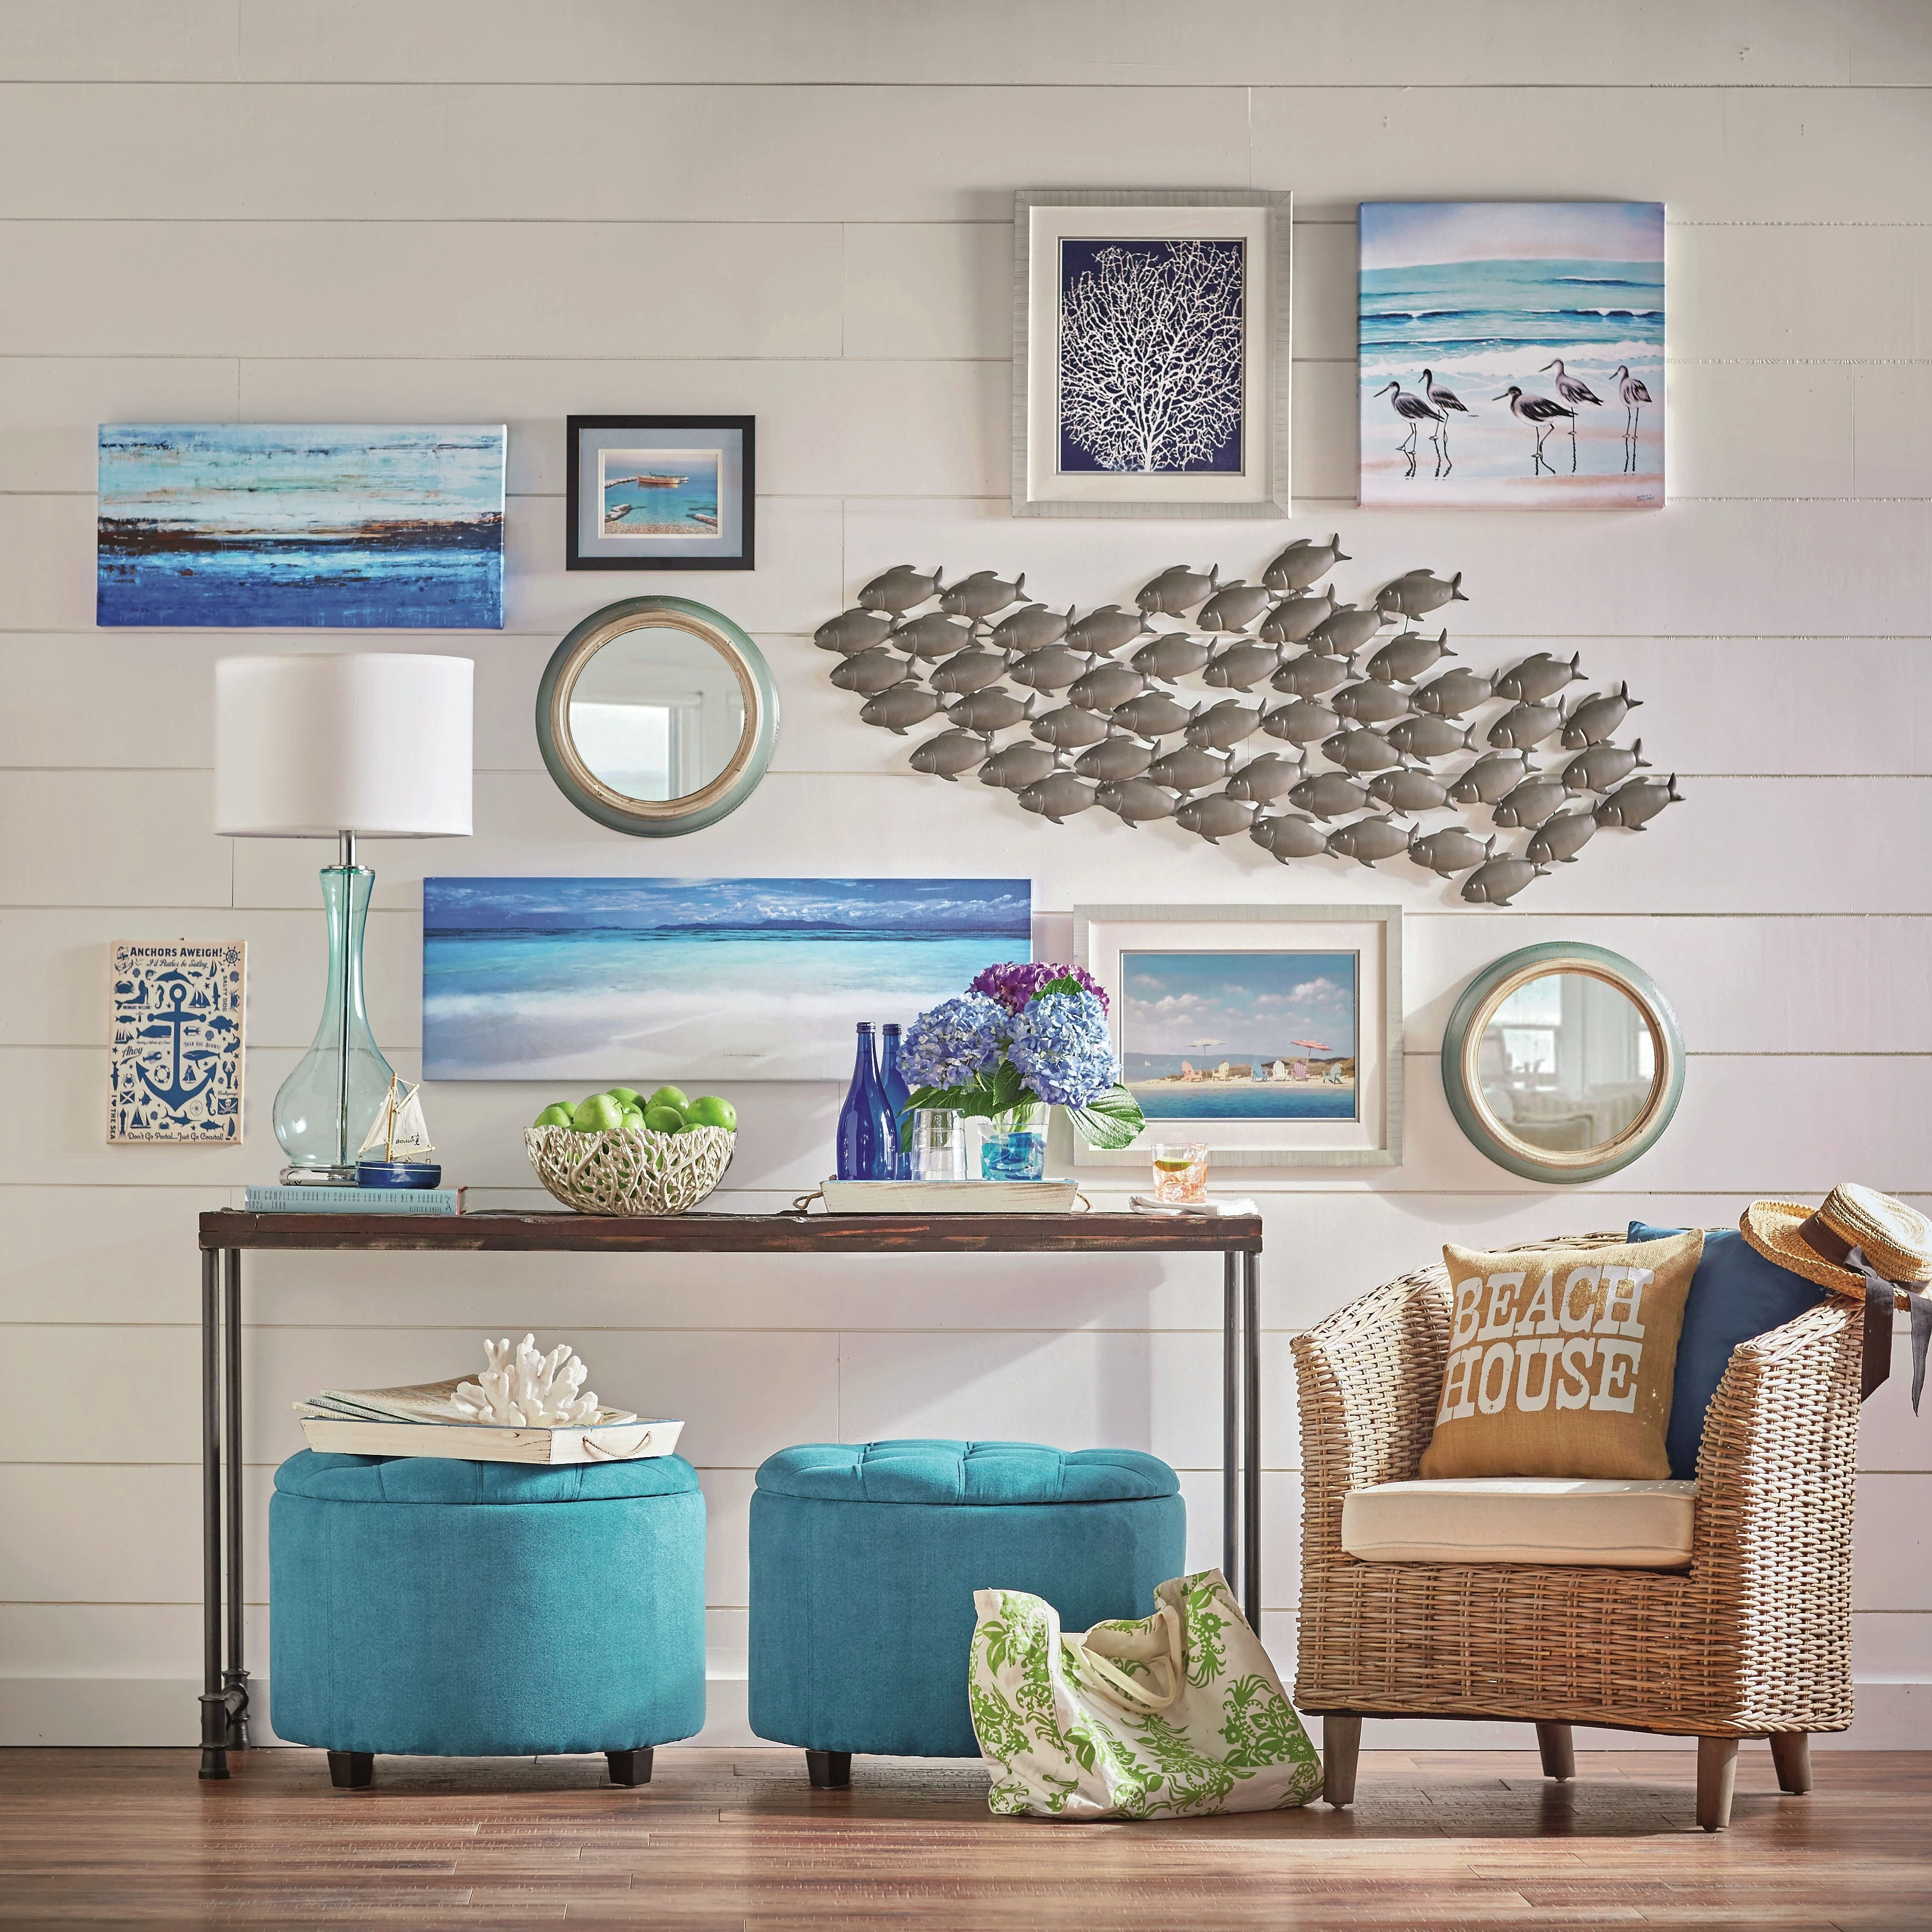 Elegant Coastal Wall Decor 9 Images On | Relaxbeautyspa Intended For Newest Large Coastal Wall Art (View 13 of 20)